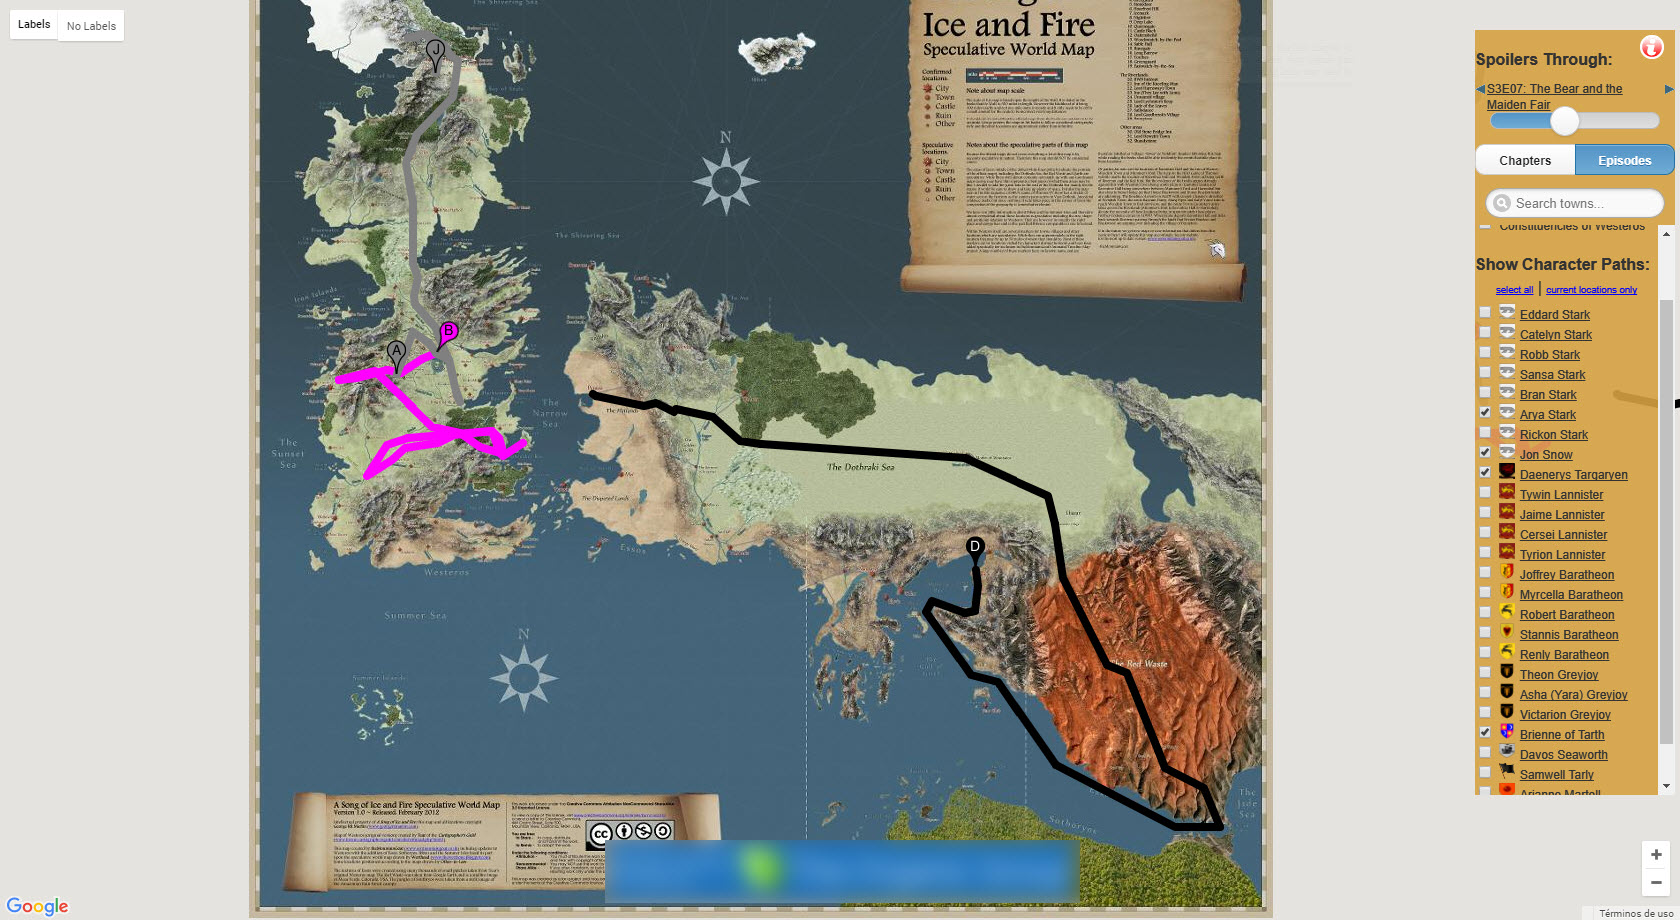 Interactive Game of Thrones Map with Spoilers Control ...